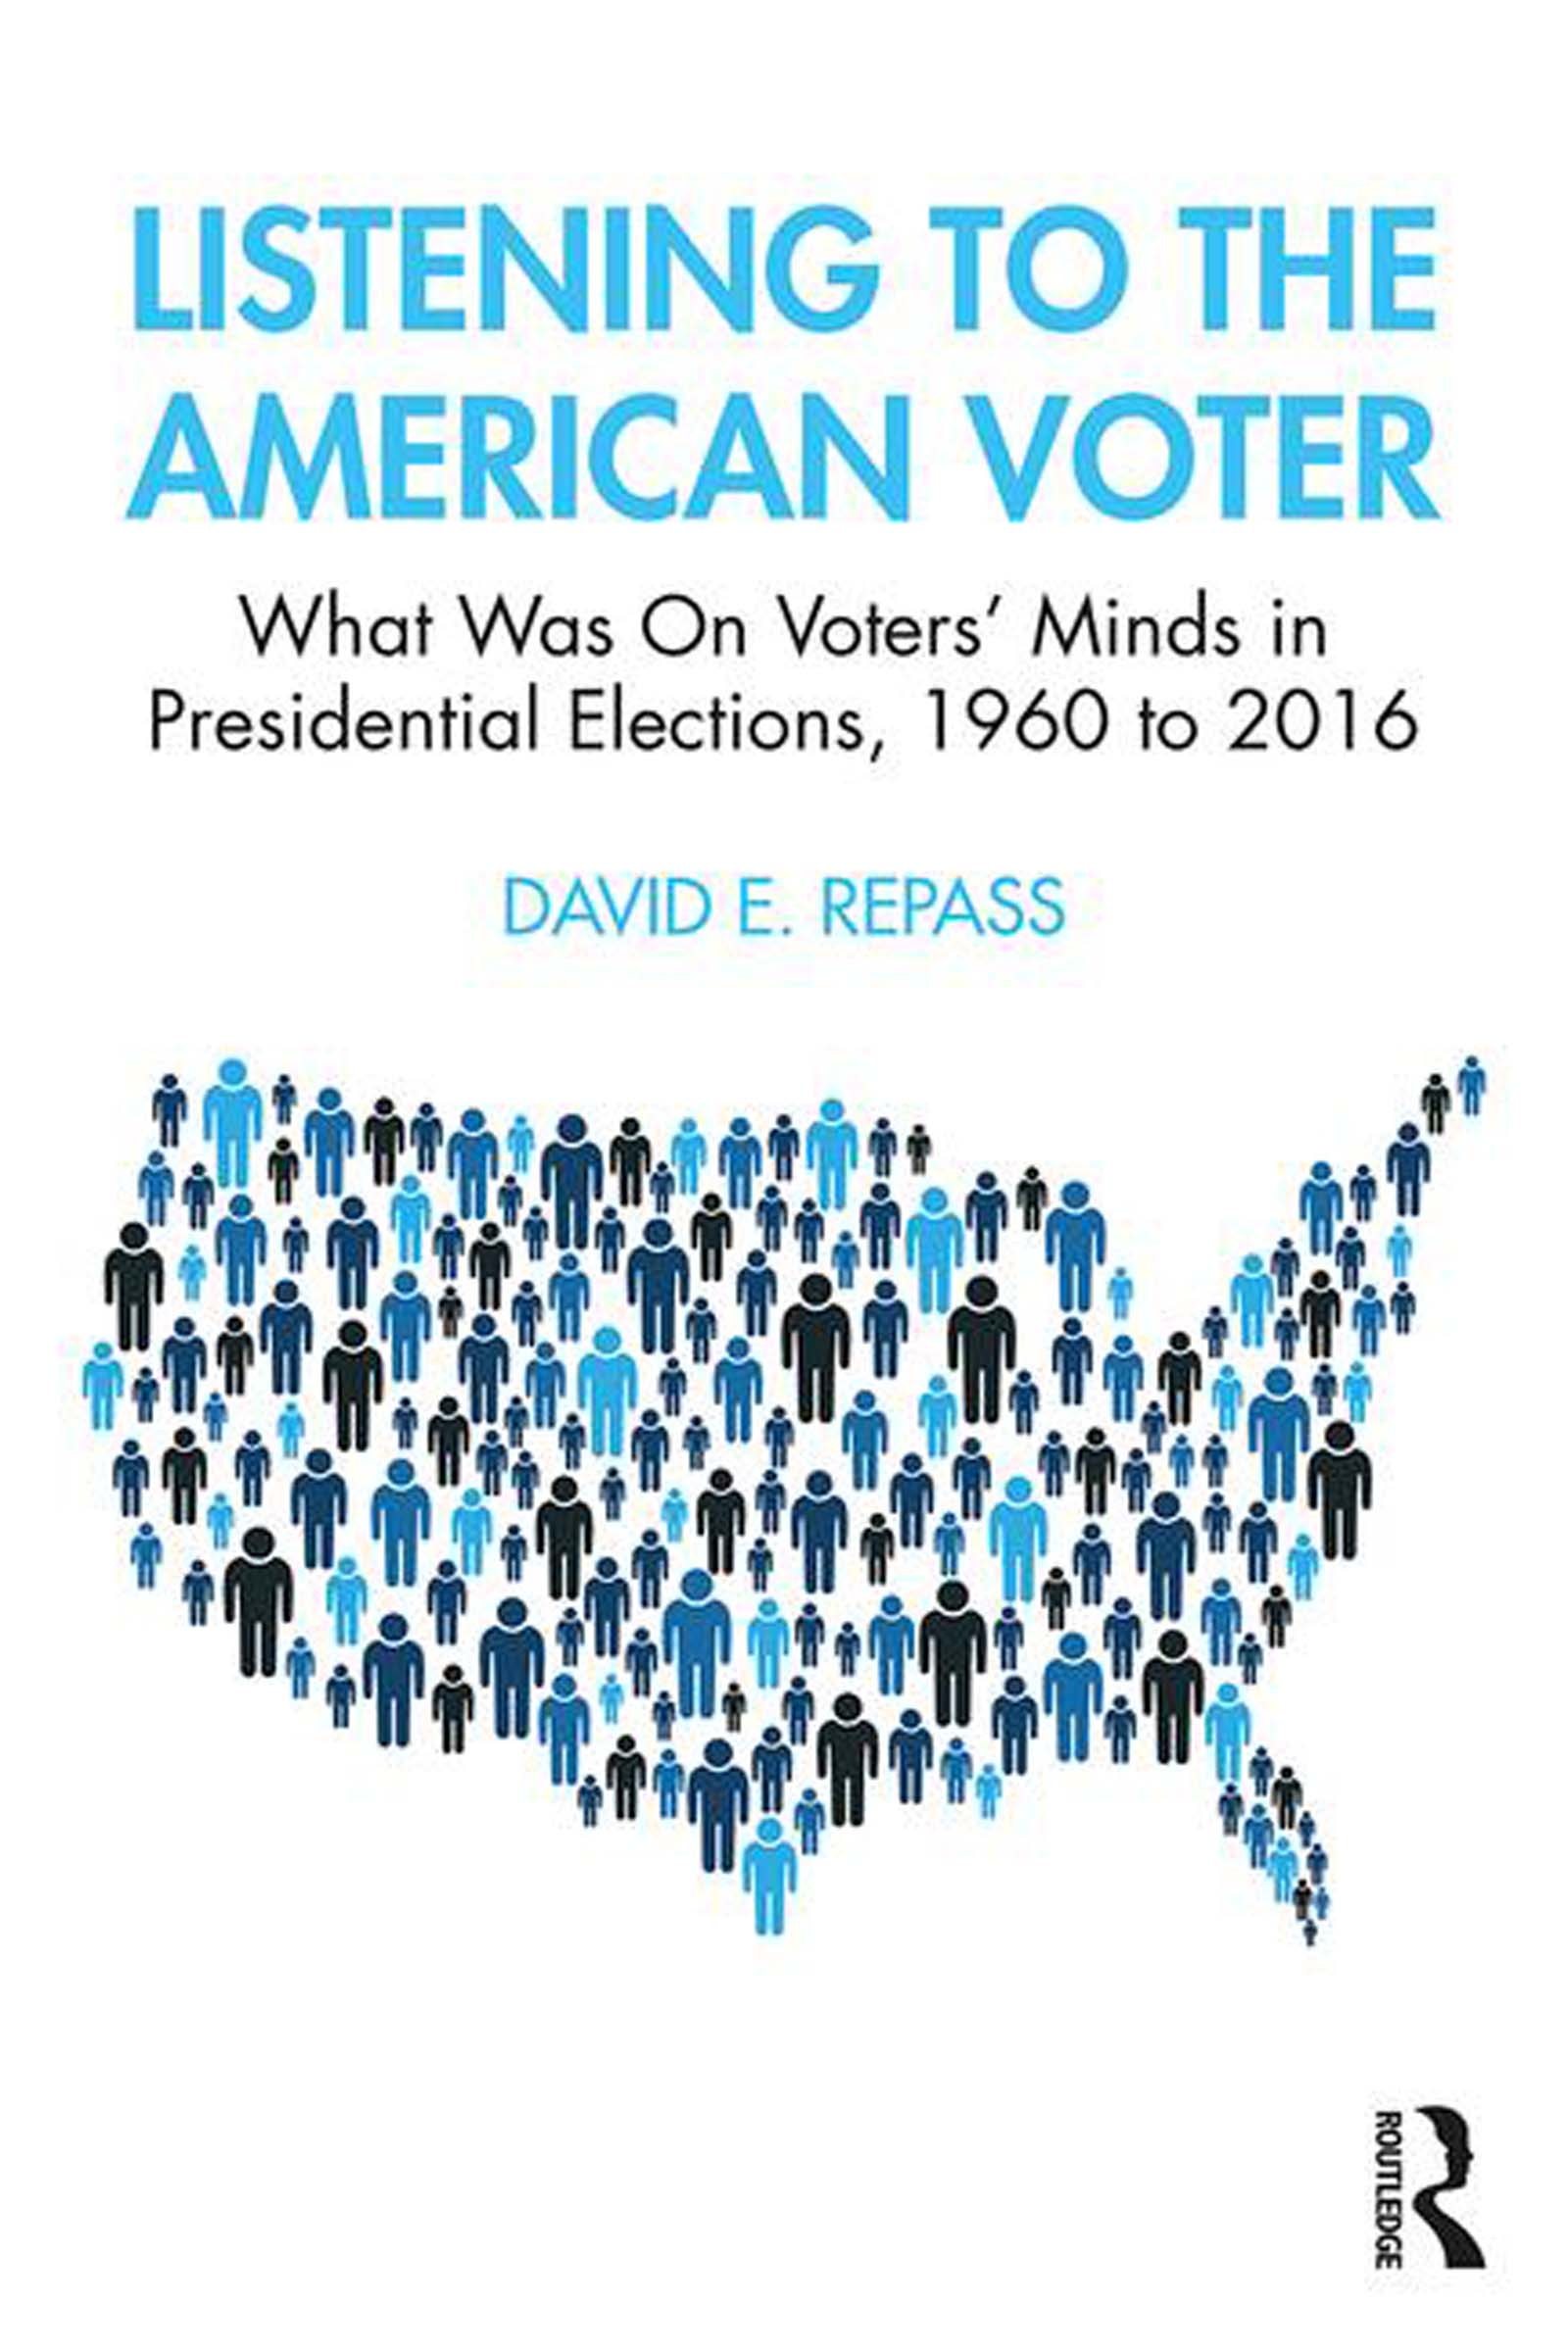 Listening to the American Voter: What Was On Voters' Minds in Presidential Elections, 1960 to 2016 book cover